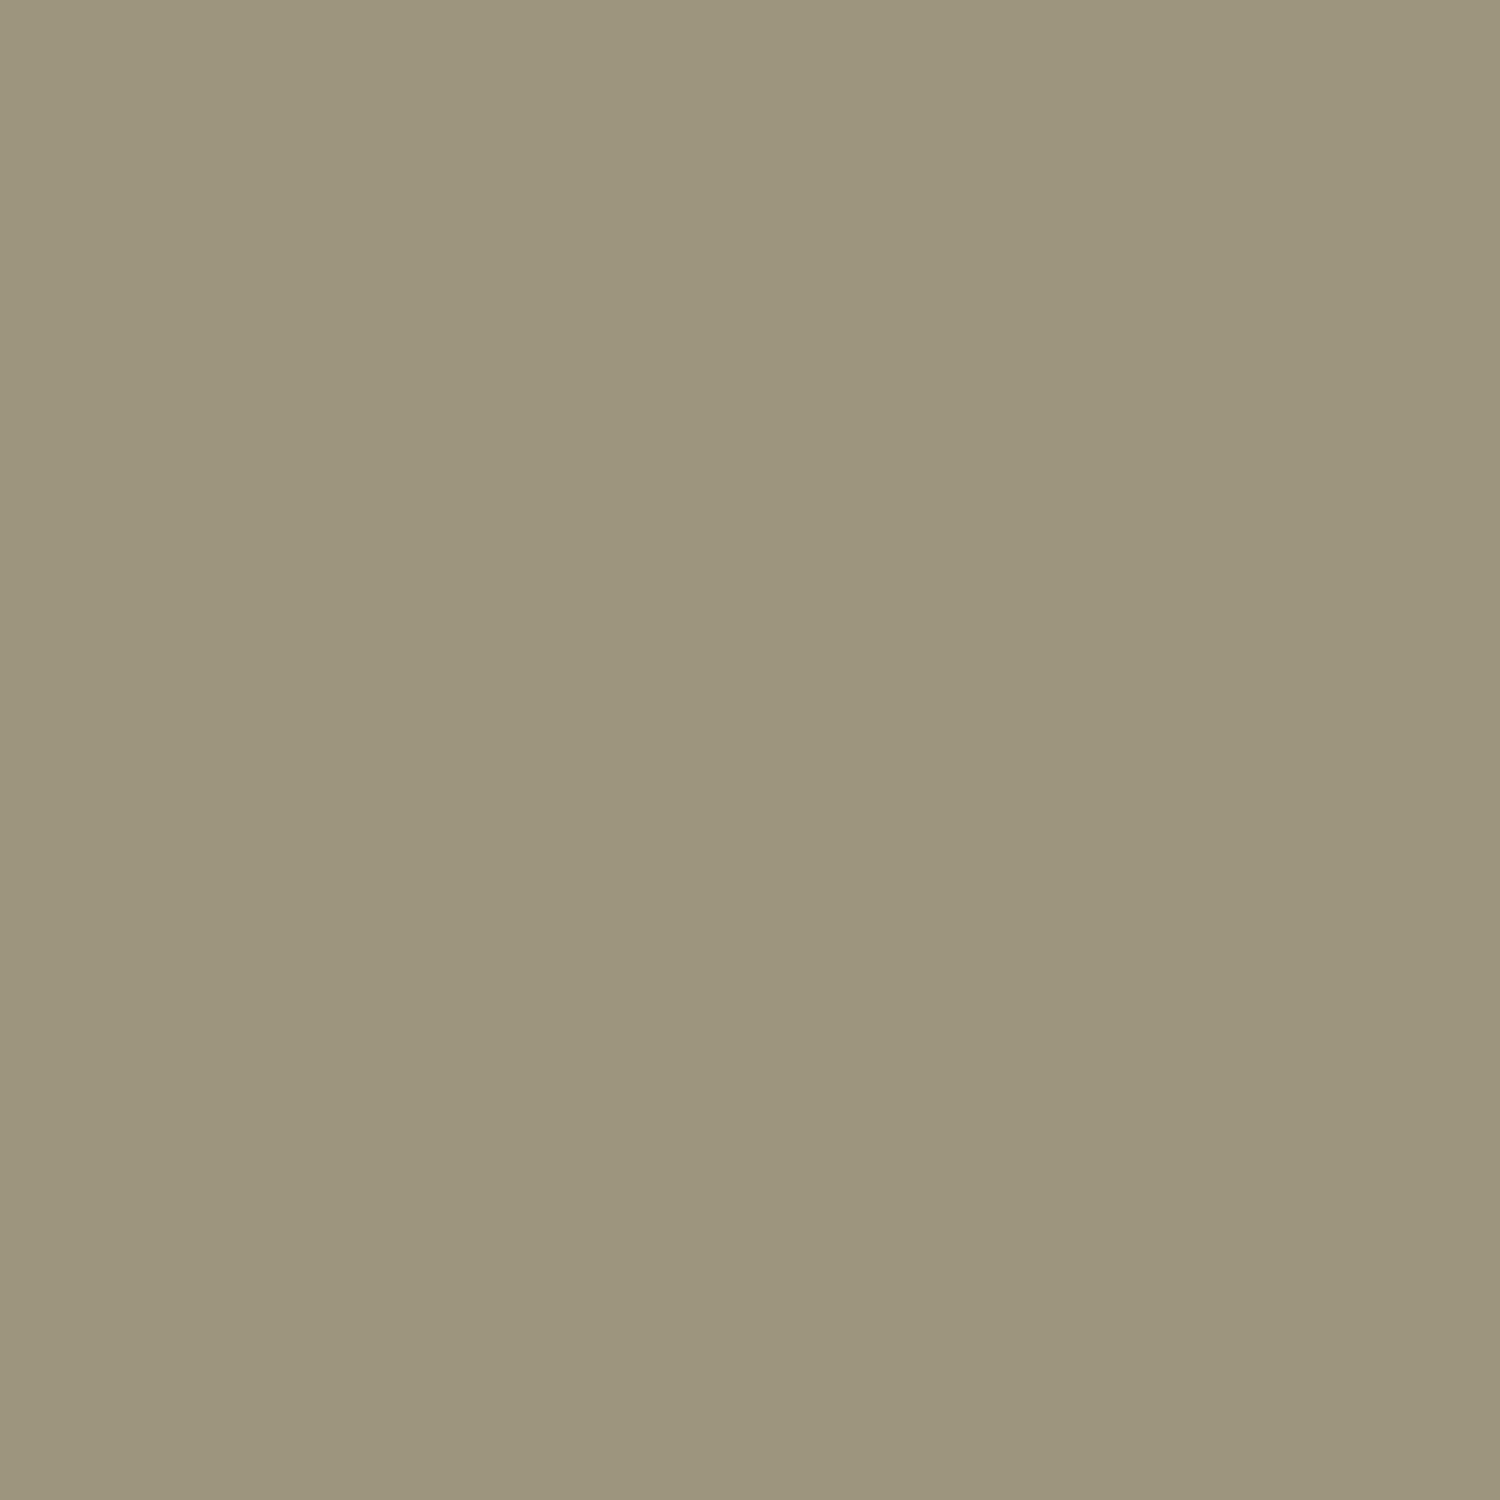 Putty - Taupe Brown